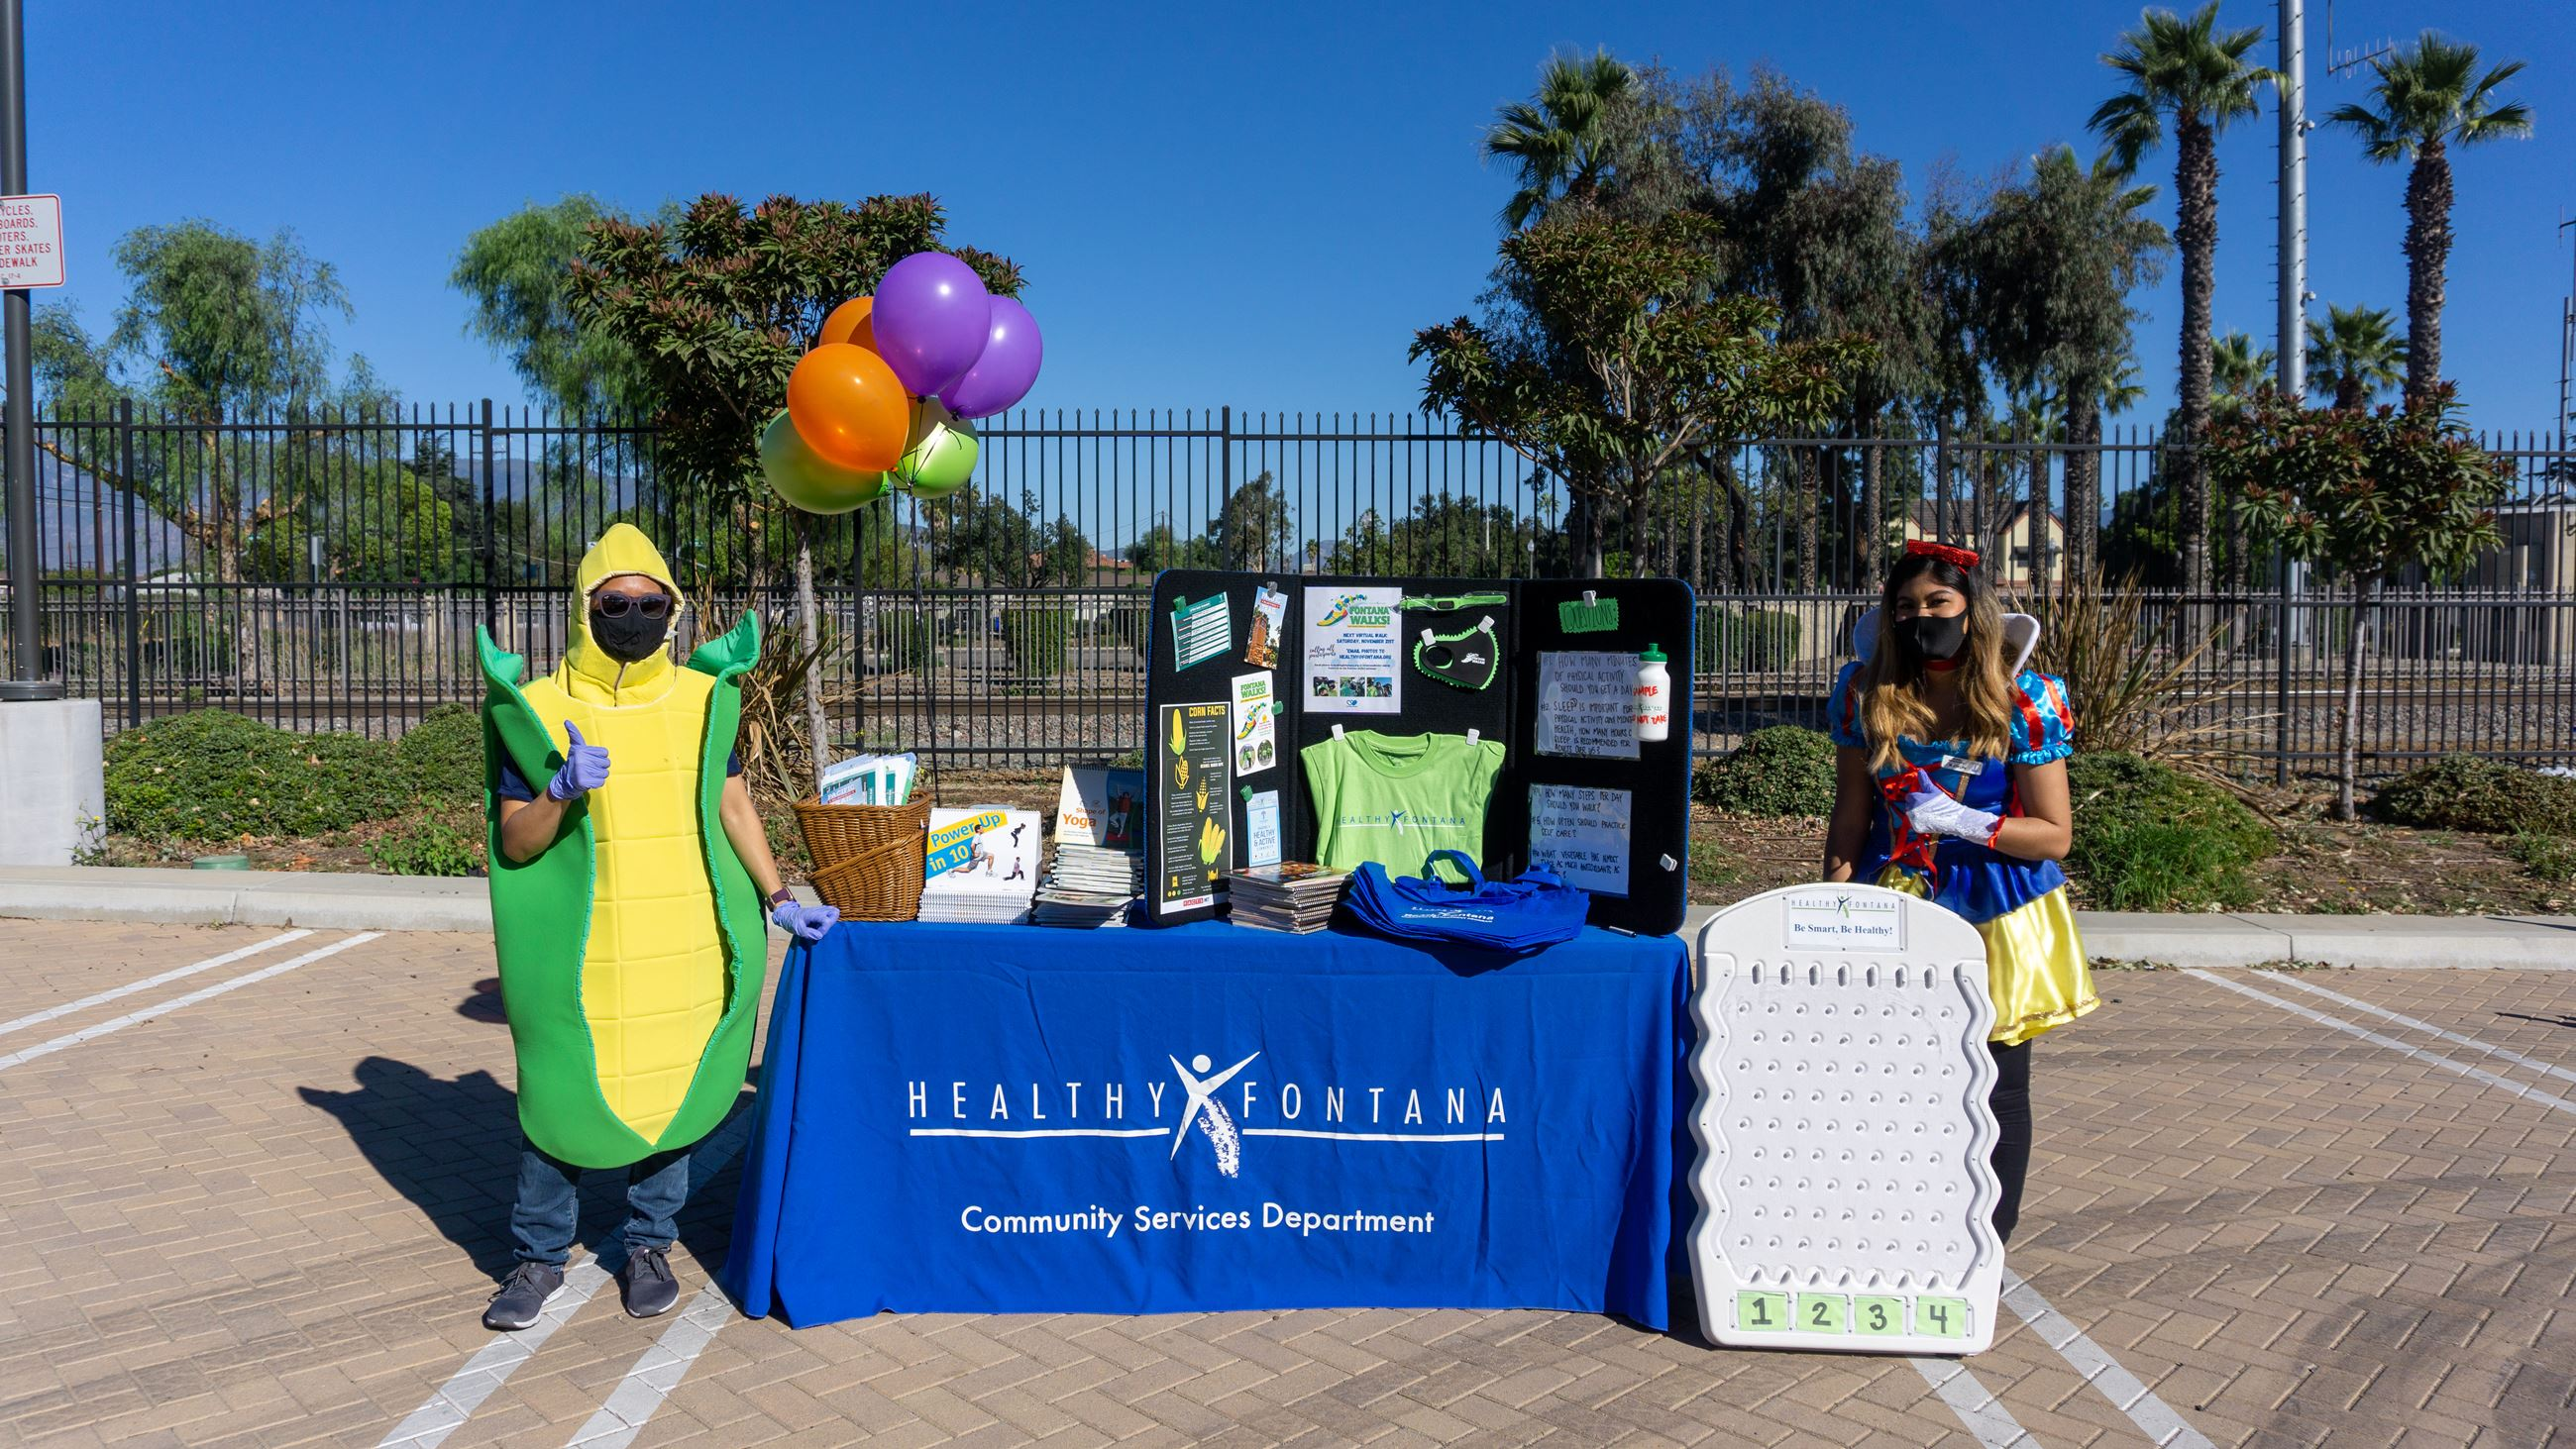 Healthy Fontana promoted healthy living at the Fontana Community Senior Center's Drive Thru Halloween event